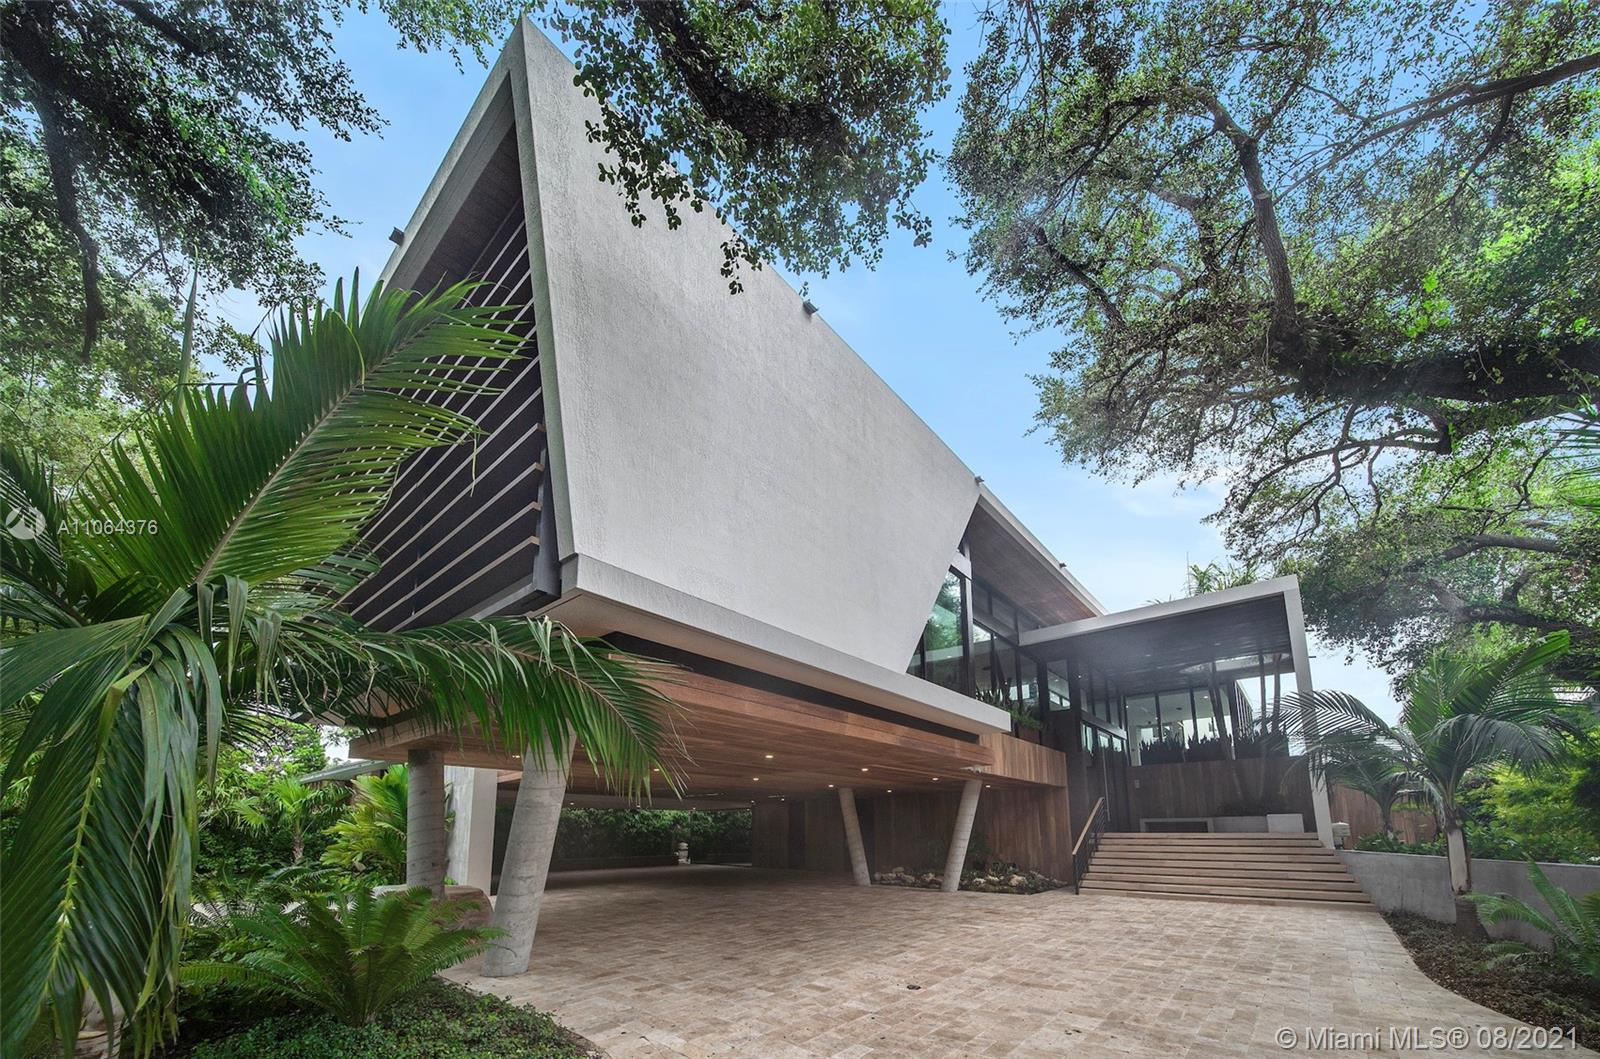 Spectacular Tropical Modern masterpiece set within a lush botanical garden behind a custom coral rock garden and gate. Designed by acclaimed architect Gabriel Lopez. The quality of finishes, fixtures, and attention to detail is unsurpassed by any new construction home in Coconut Grove. Double-height ceilings and walls of glass create a seamless blending of interior and fabulous exterior spaces. Custom kitchen by Bontempo. Smart Home automation. 2-electric car charging stations. 24/7 security patrol. Live amongst the elite on the exclusive residences behind Vizcaya Gardens. Minutes to downtown, Brickell, and the Beaches. Total 16,304 SF; Adj 9,753 SF